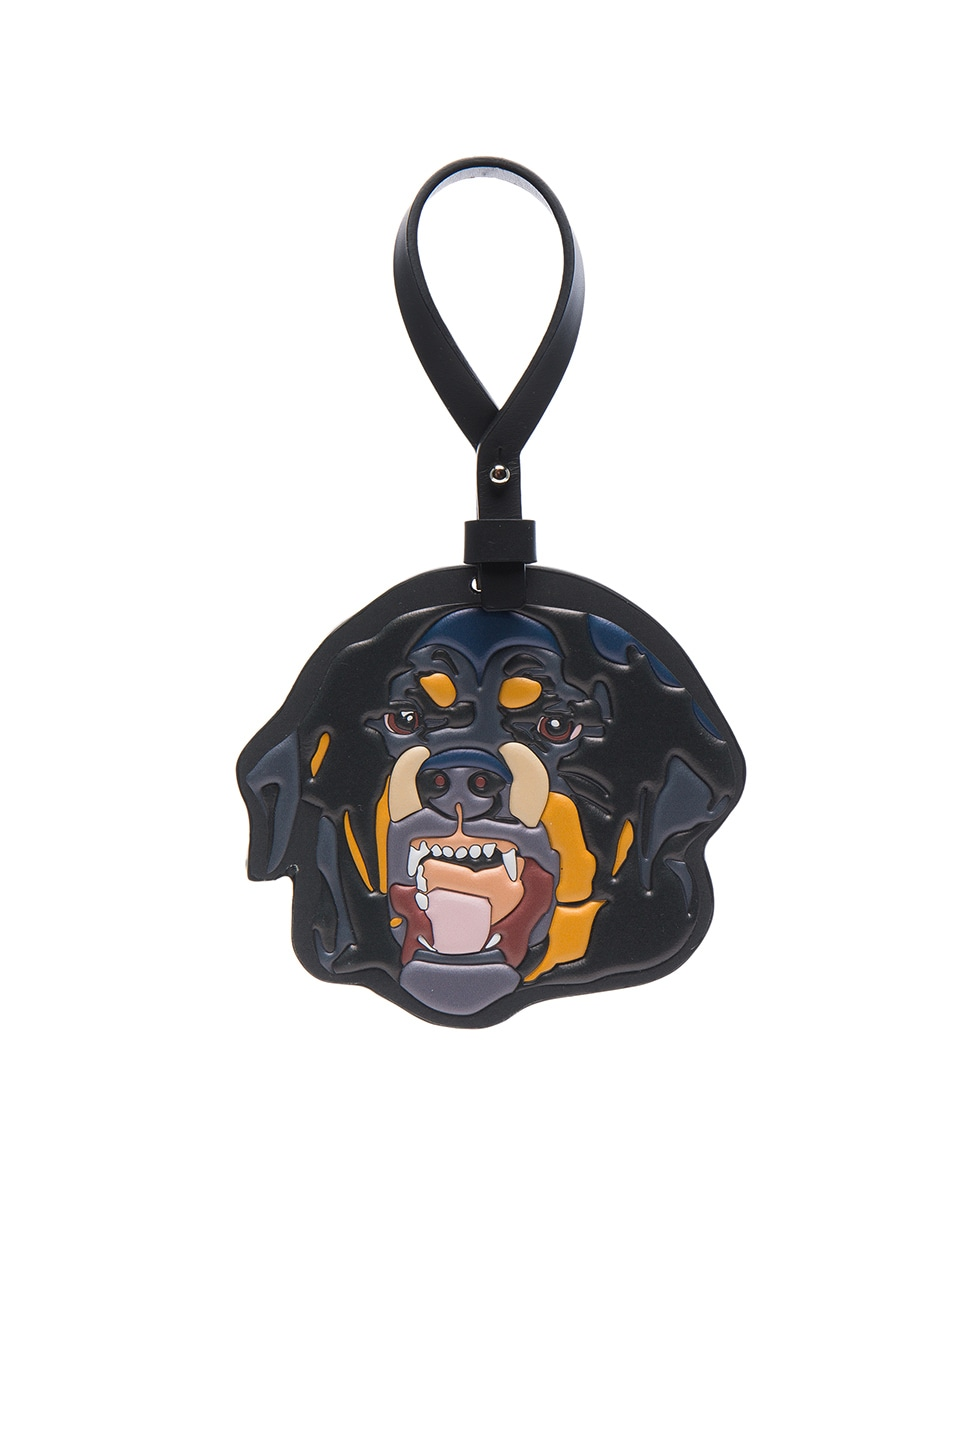 givenchy s leather rottweiler charm for bag or